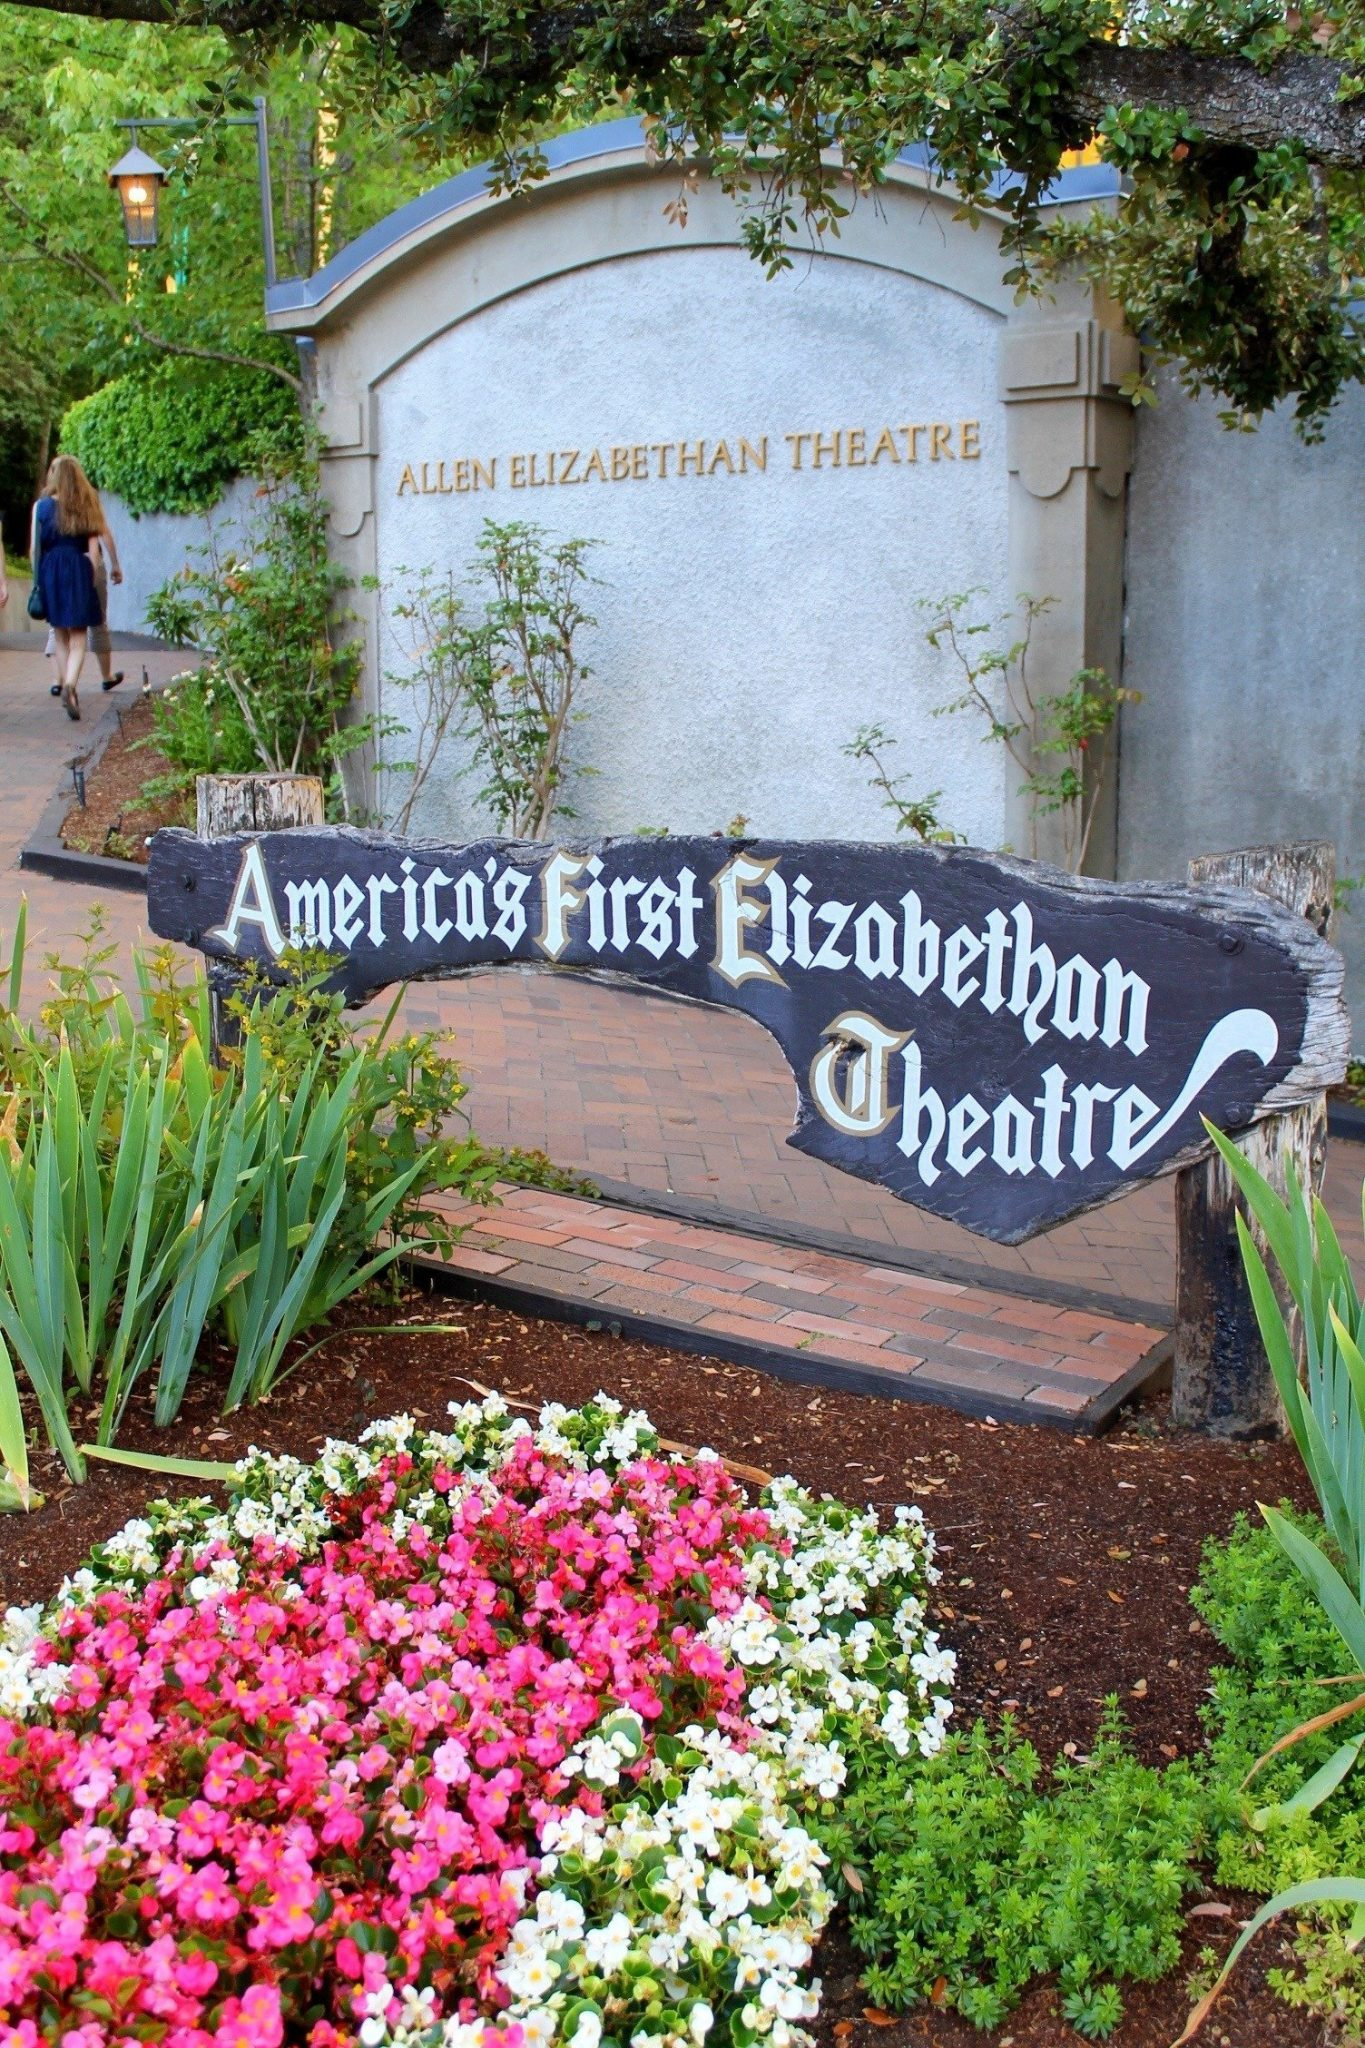 Oregon-Shakespeare-Festival-Elizabethan-Theatre-Ashland